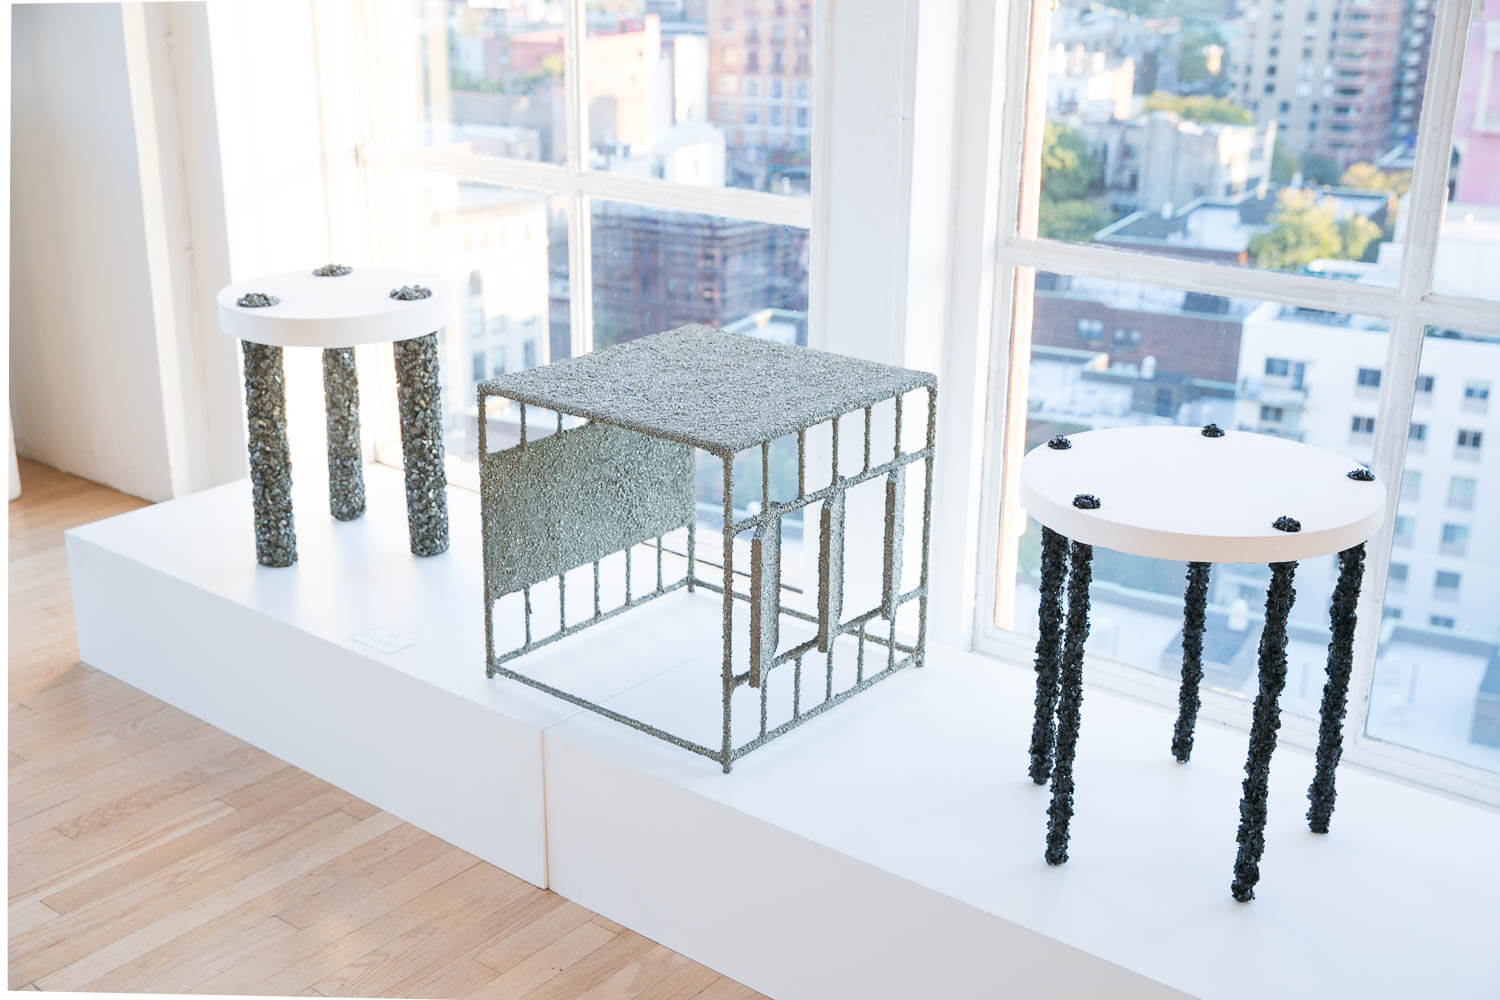 Samuel Amoia 5 leg tourmaline table made of black tourmaline from India and white plaster